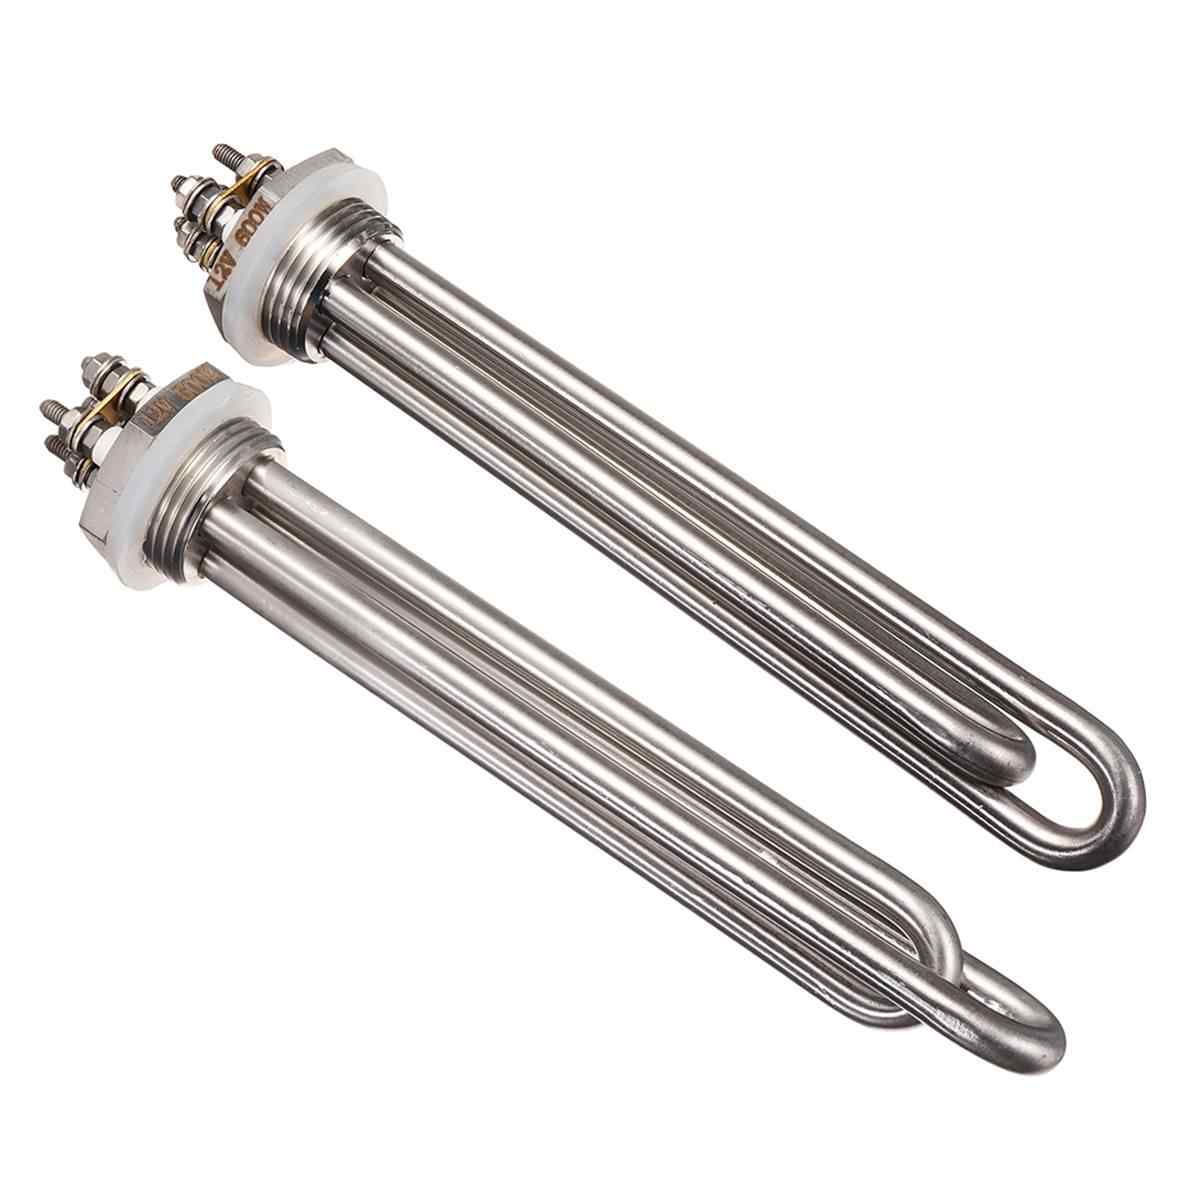 12v 600w Electric Heater Stainless Steel Water Heating Element 1 Inch BSP NPT Immersion Heater Boiler Water Heater